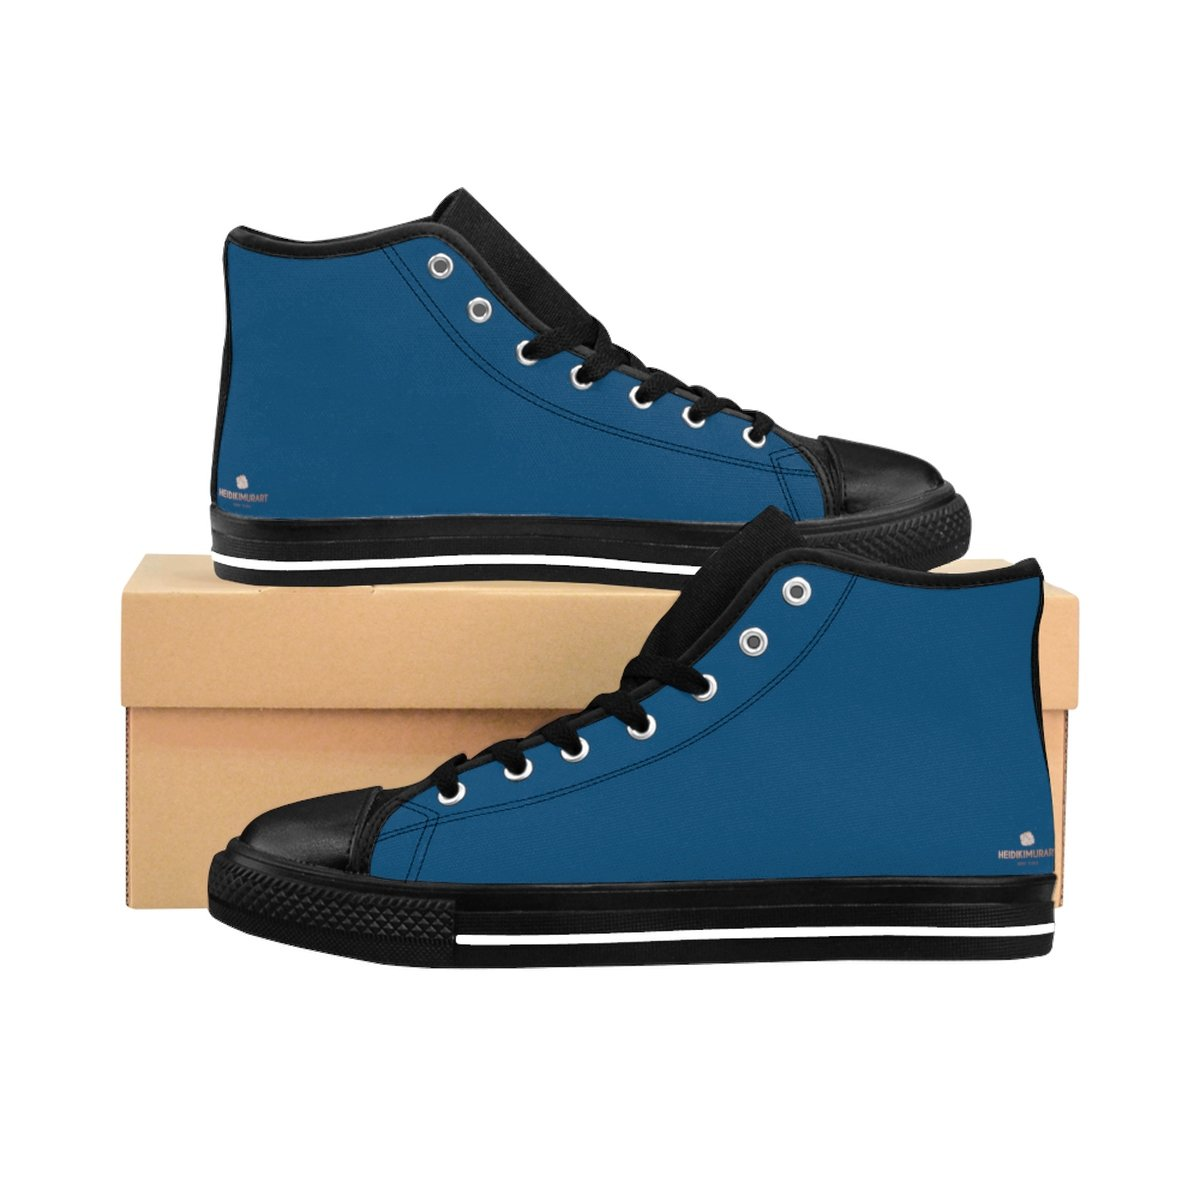 Teal Blue Solid Color Premium Quality Men's High-Top Sneakers Fashion Tennis Shoes-Men's High Top Sneakers-Black-US 9-Heidi Kimura Art LLC